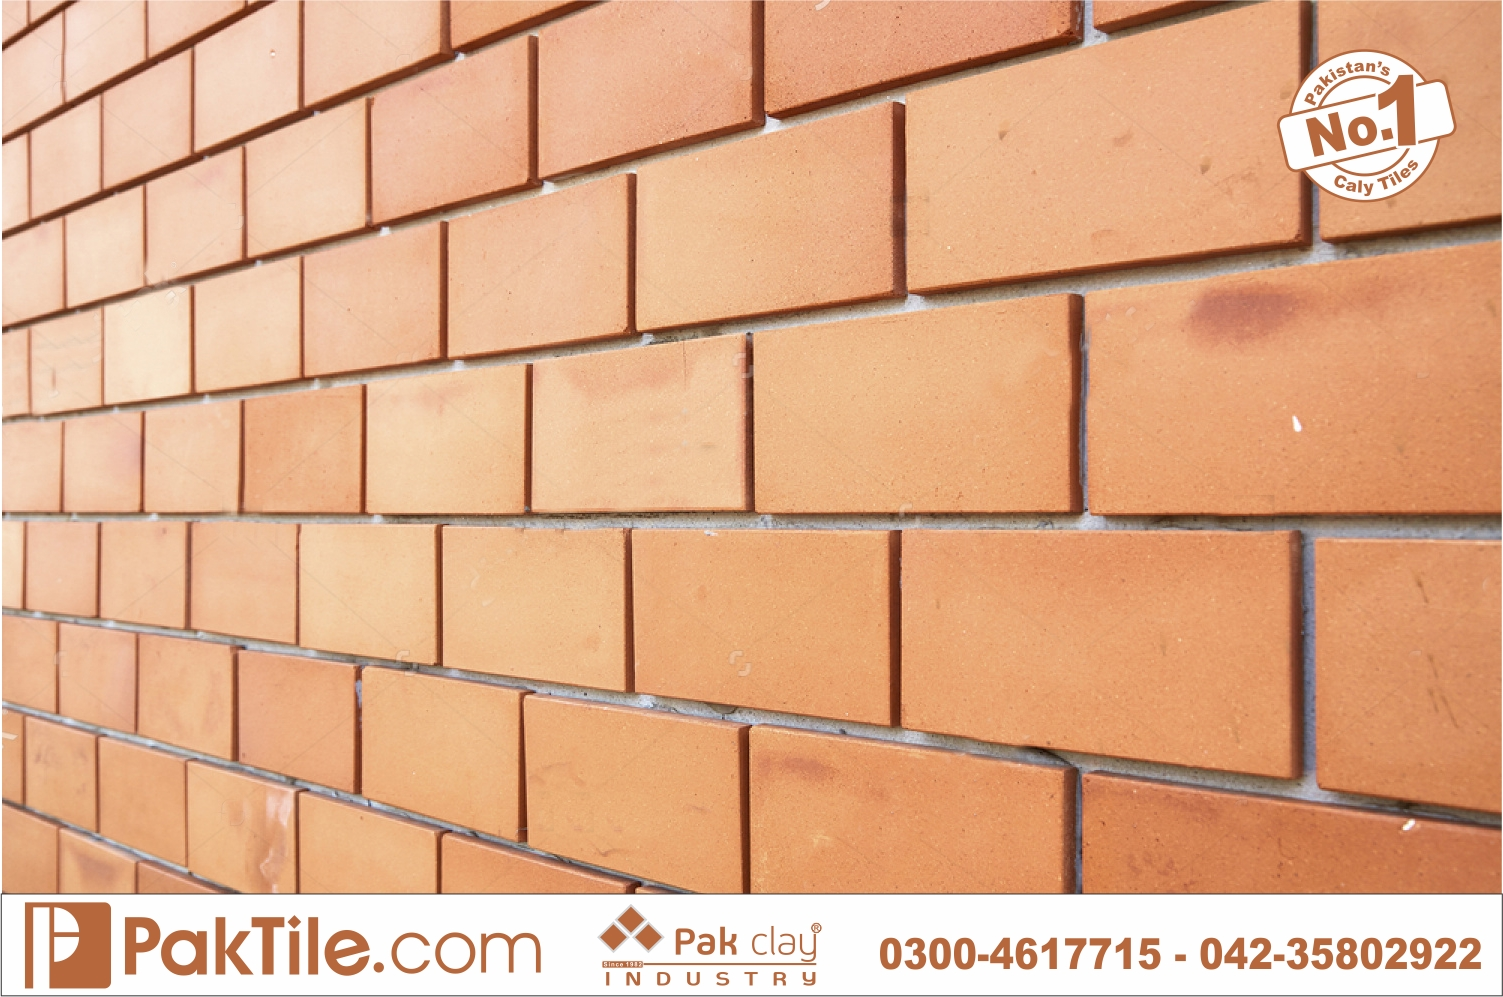 12 Pak Clay Industry terracotta bricks facade tiles price pakistan images